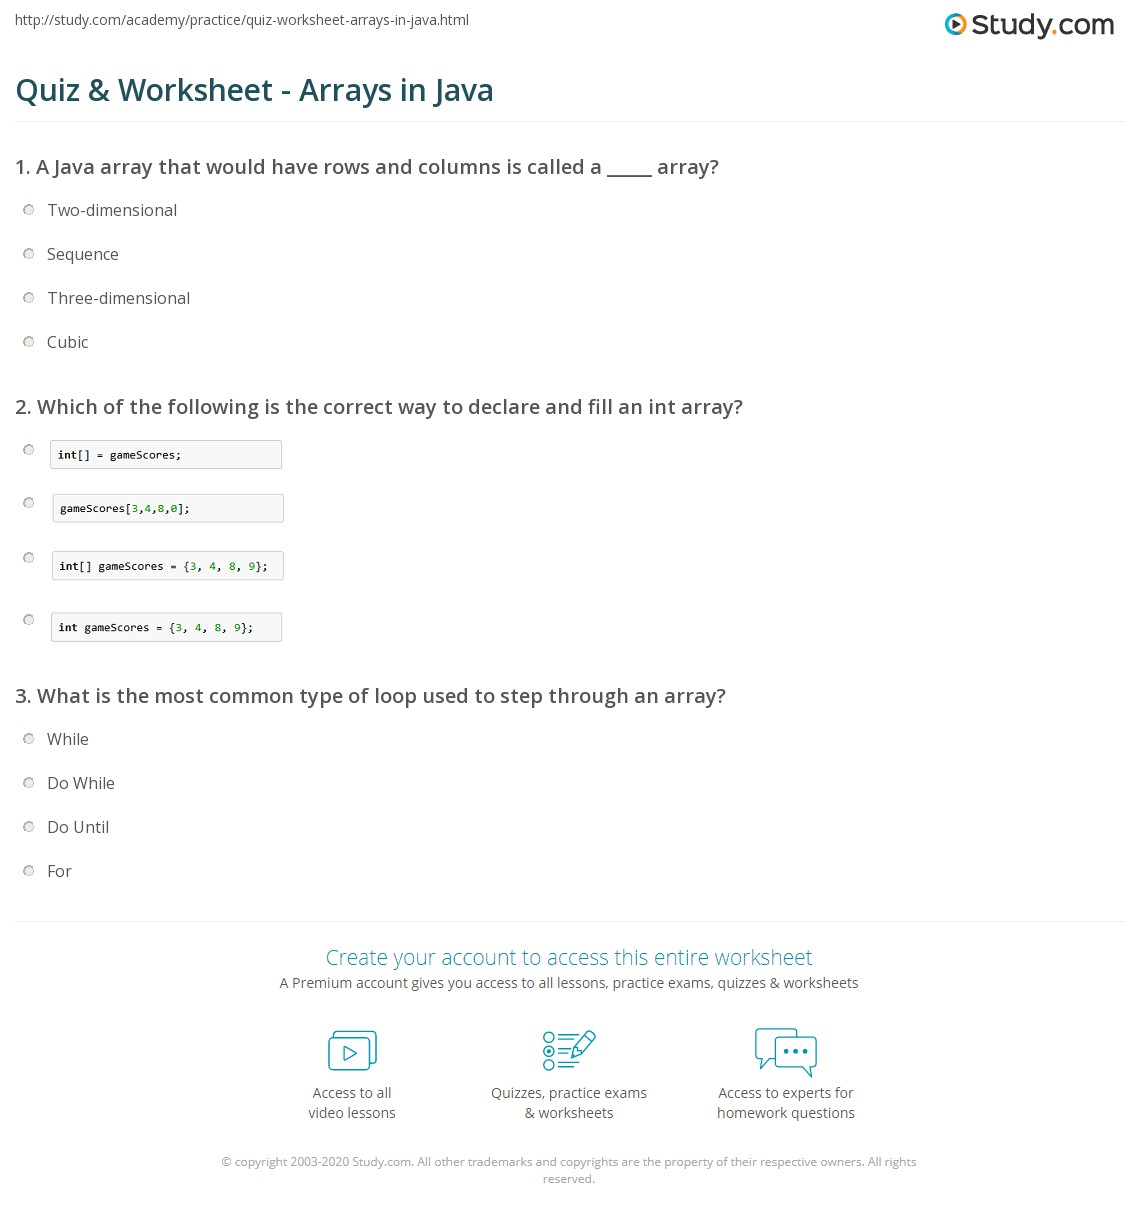 Quiz & Worksheet - Arrays in Java | Study.com